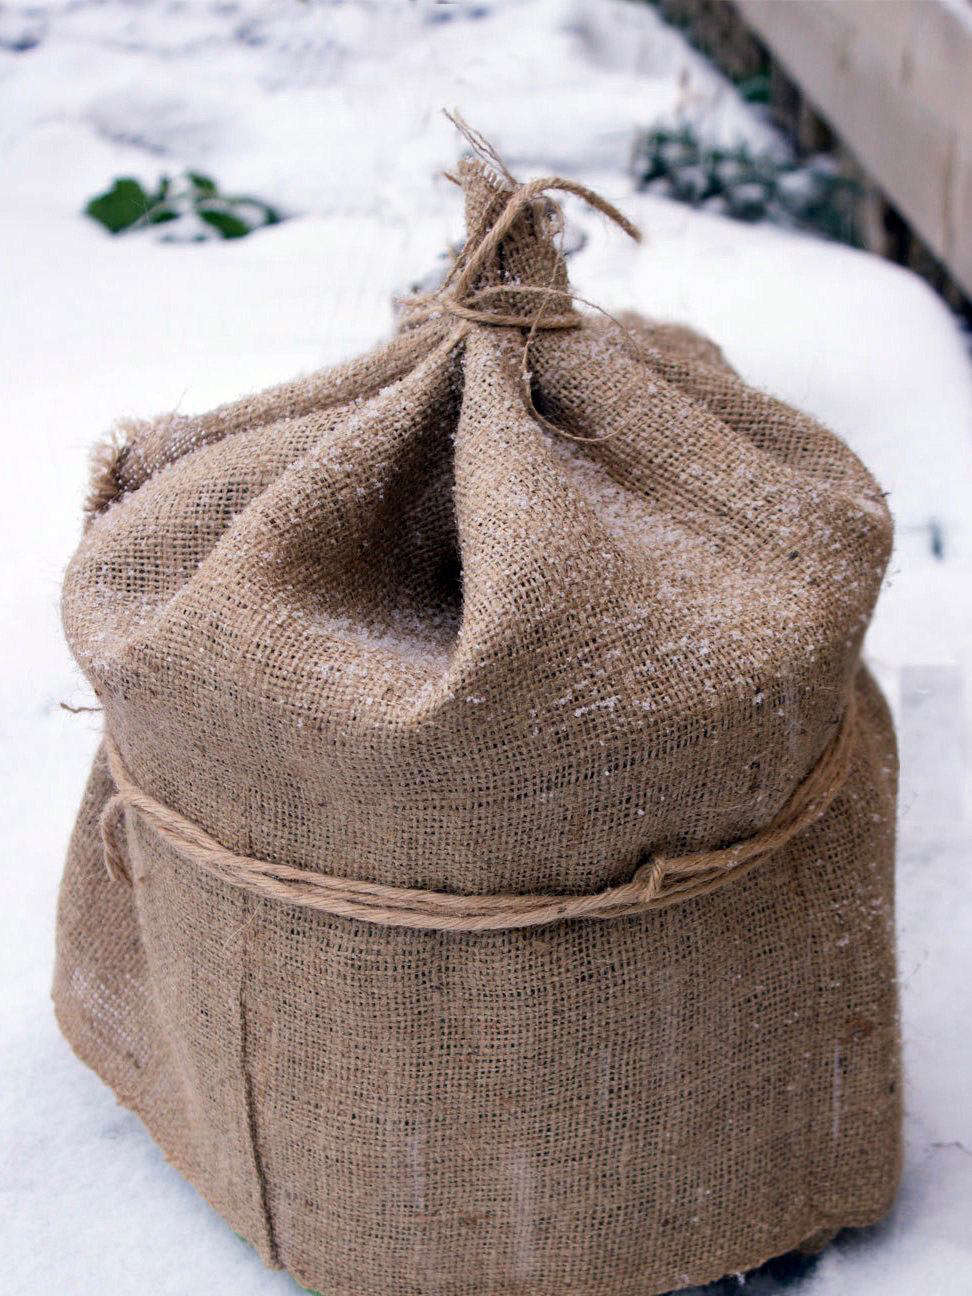 A 12-foot-long Burlap Plant Cover with a width of 40 inches is $11.99 from Clever Brand via Etsy.